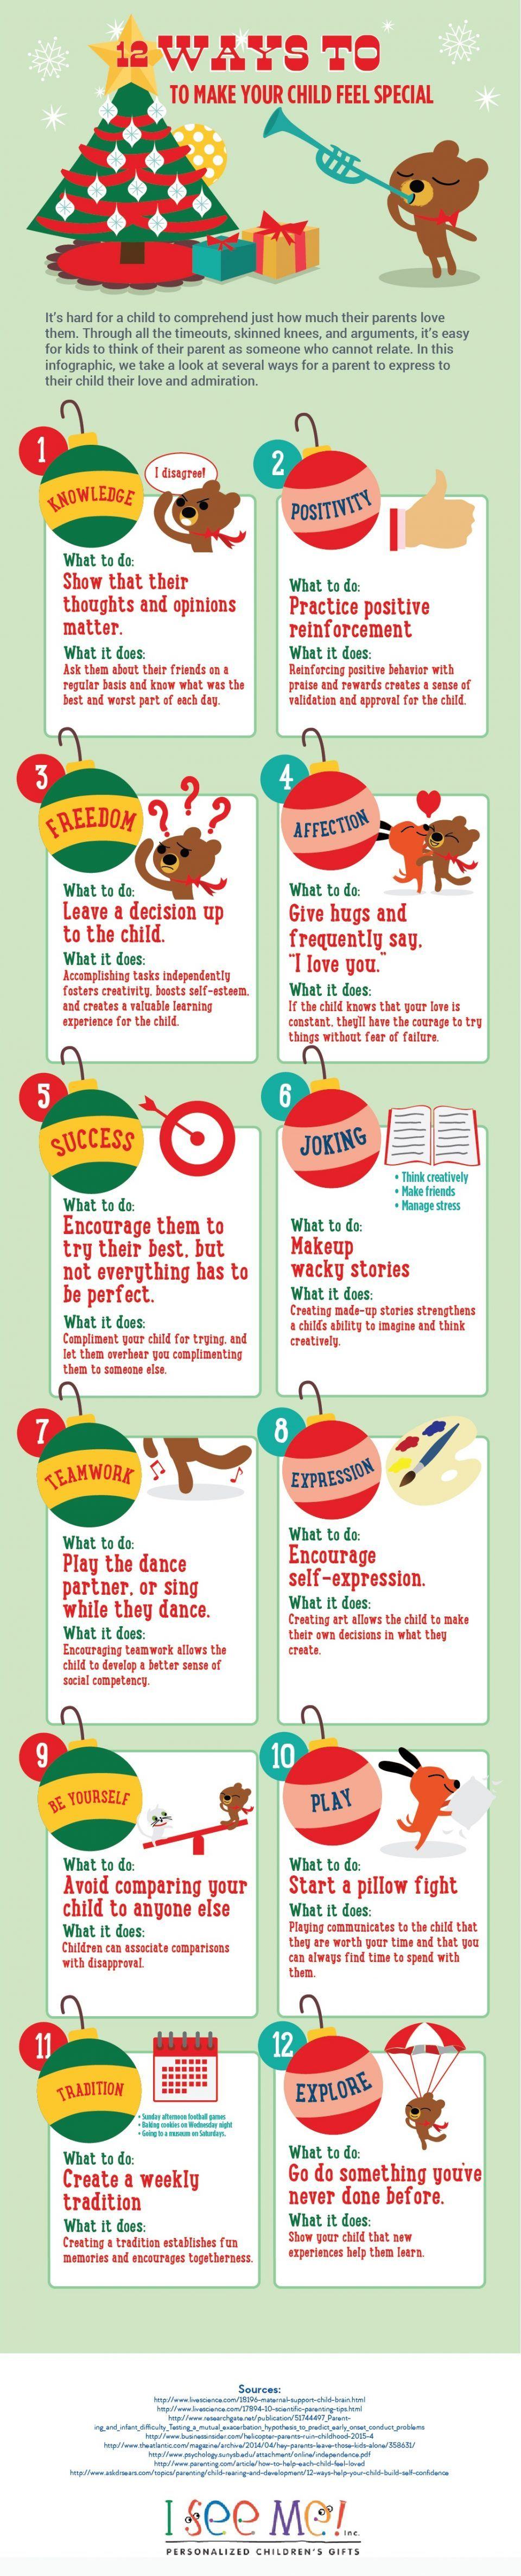 The 12 Ways to Make Your Child Feel Special Infographic takes a look at several ways for a parent to express to their child their love and admiration.